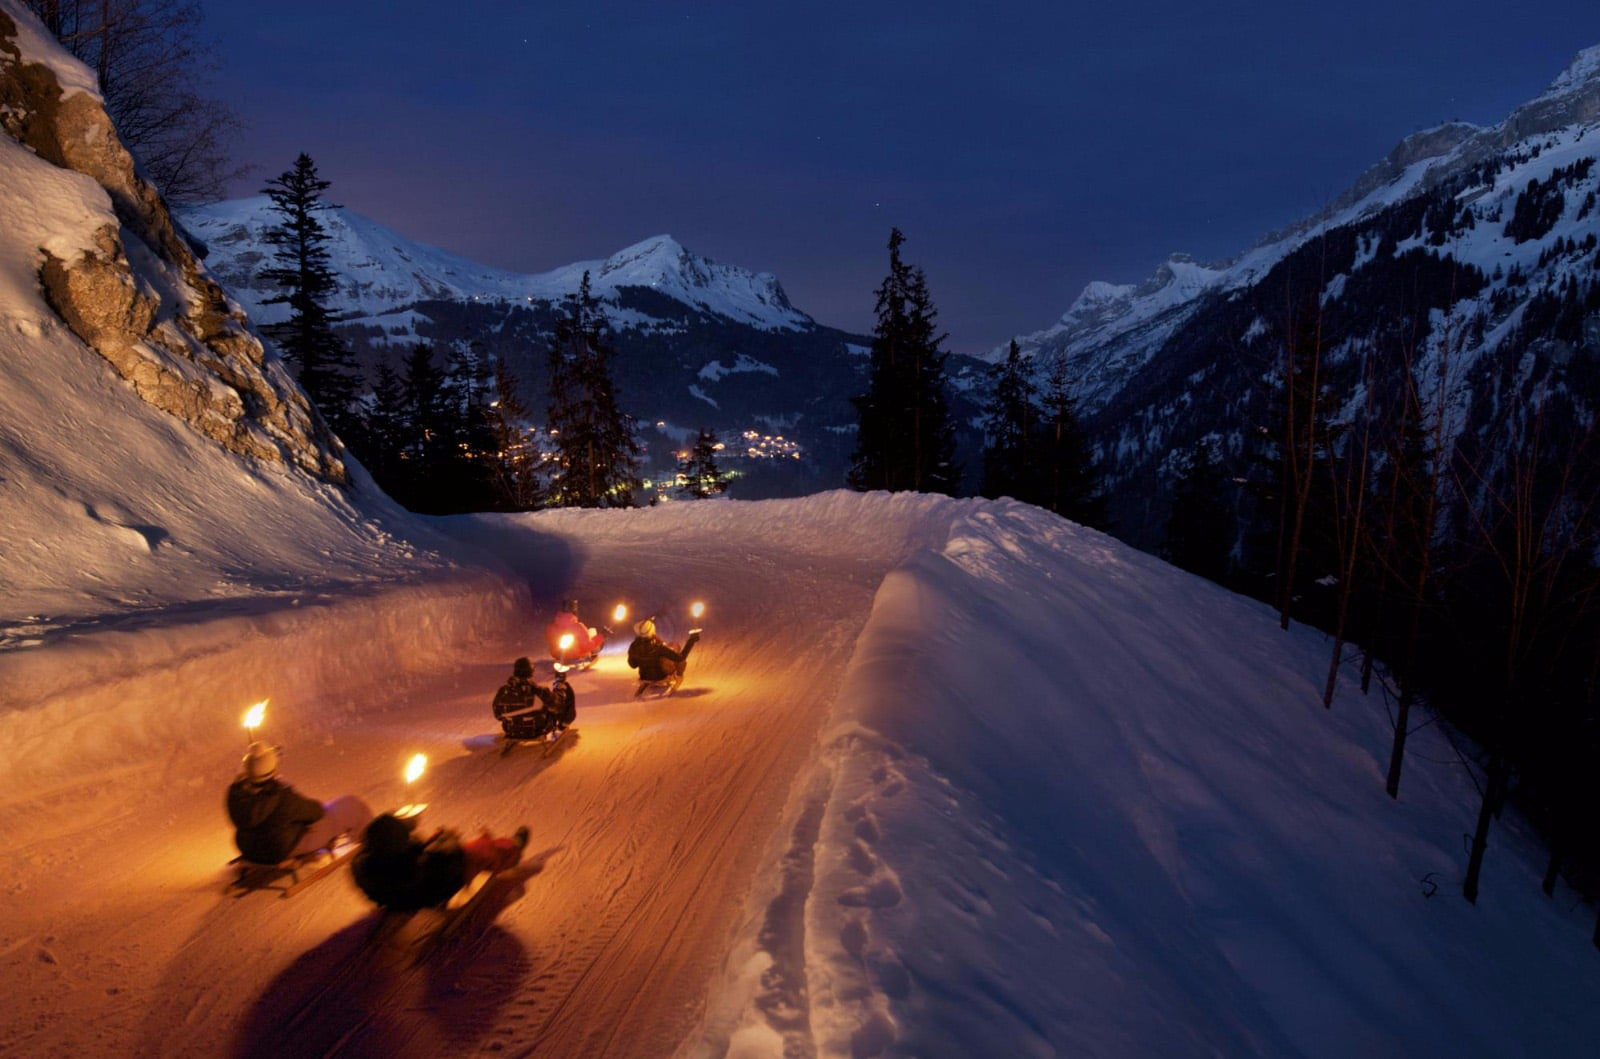 Night sledding down the mountain